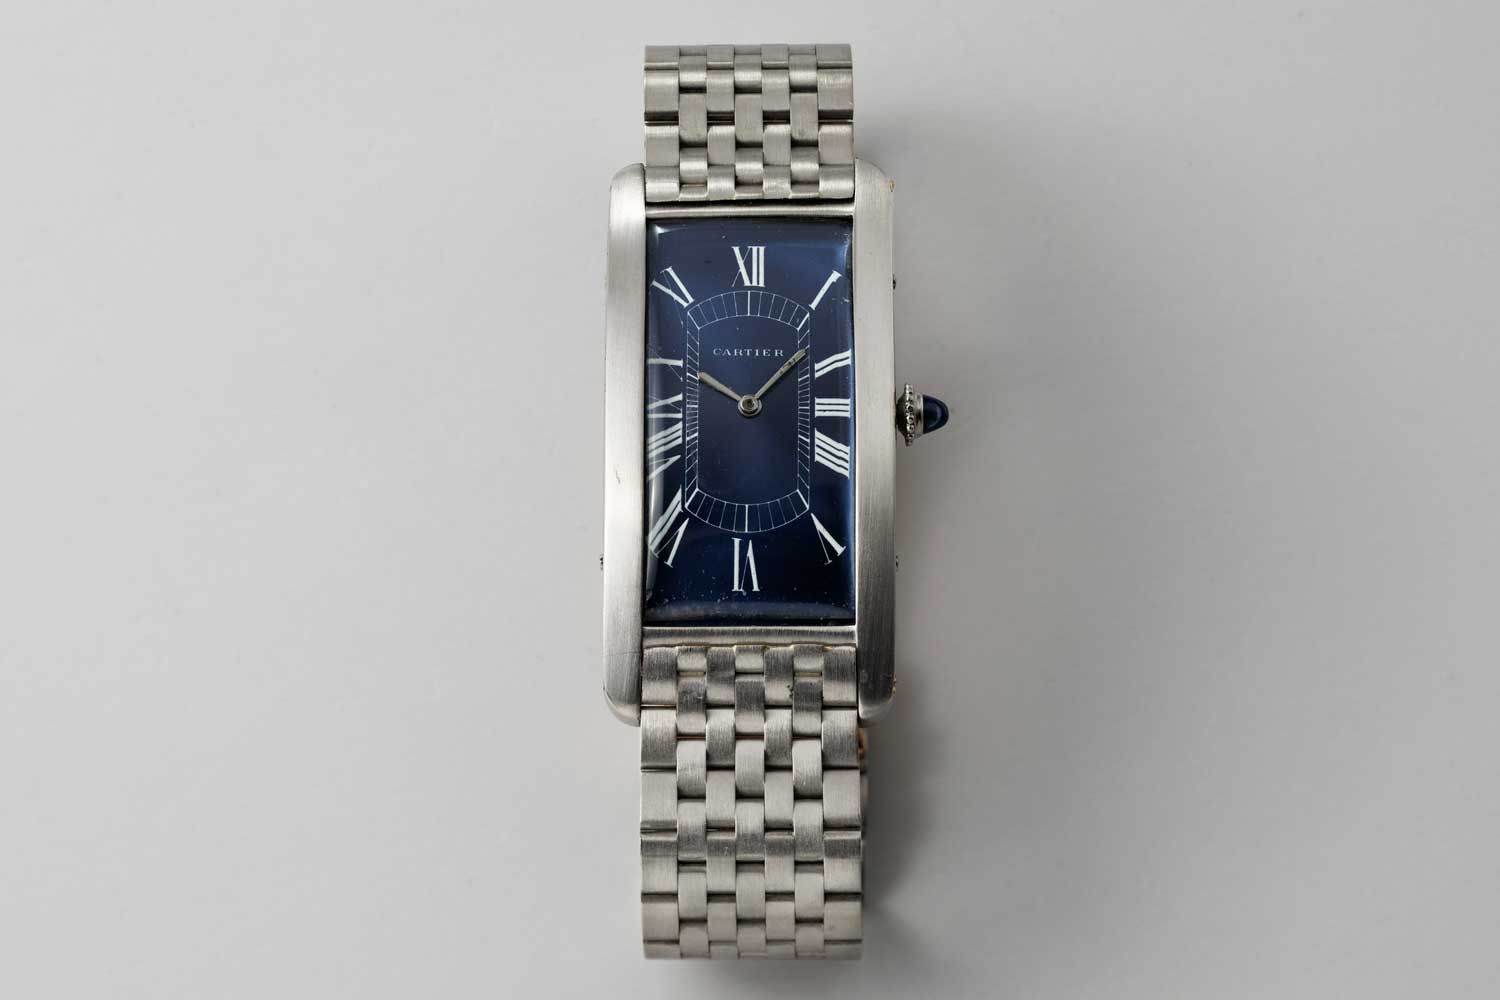 1929 platinum Cartier Paris Tank Cintrée with European Watch movement; In the middle of the 1990s a special order was made with Paris for a new blue dial with white Roman numerals, ie the dial placed in the case at the moment is not the same one from 1929; this particular example is from the private collection of Auro Montanari (©Revolution)